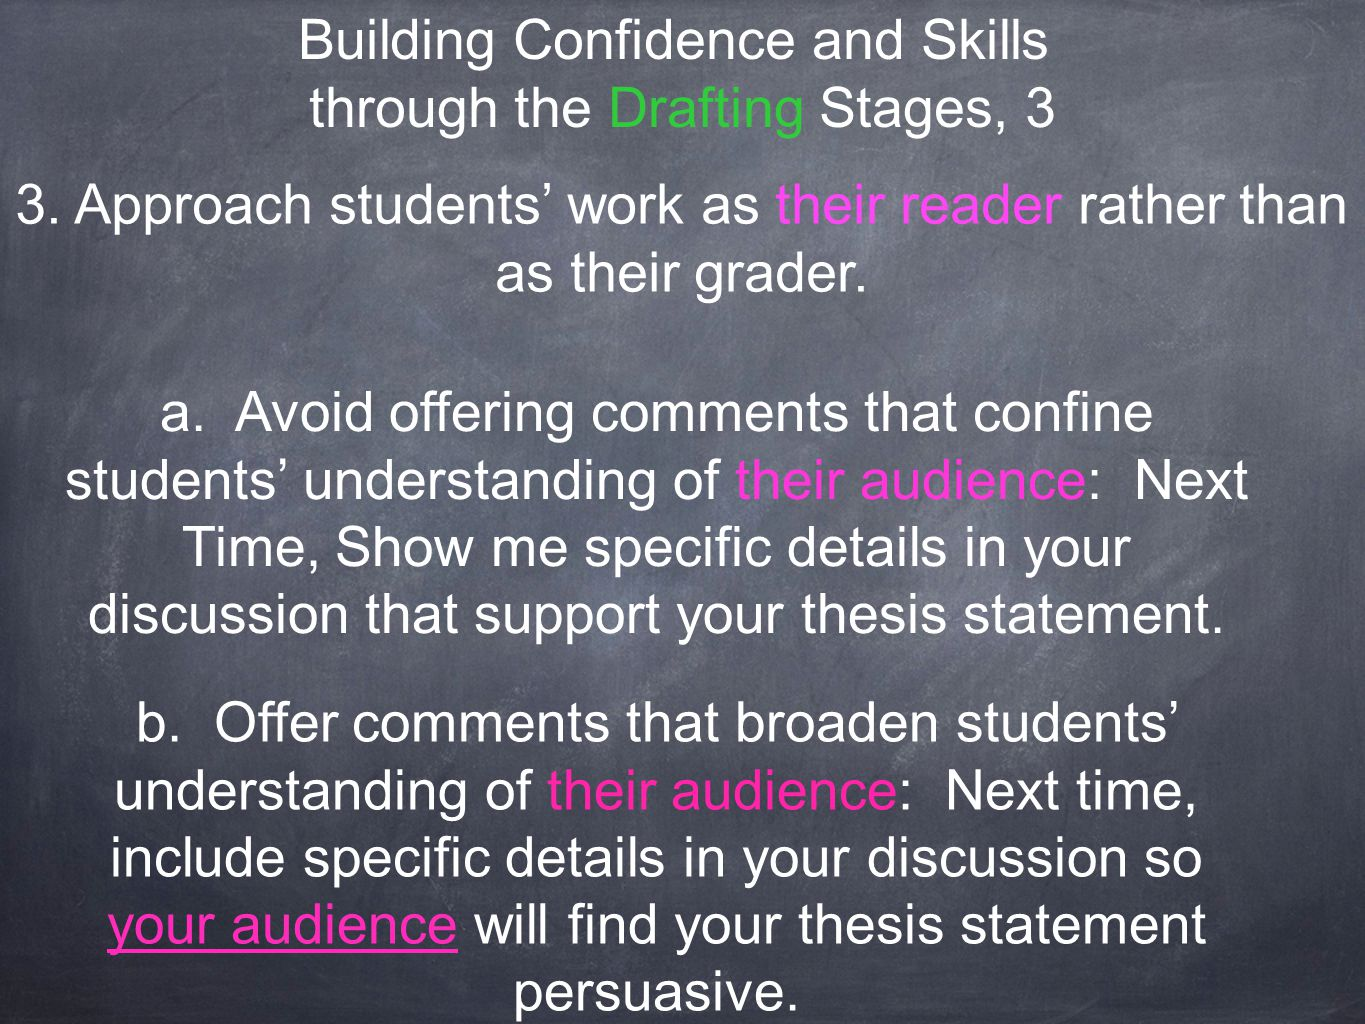 thesis statement about confidence Learning how to write a thesis statement can give students confidence in writing.